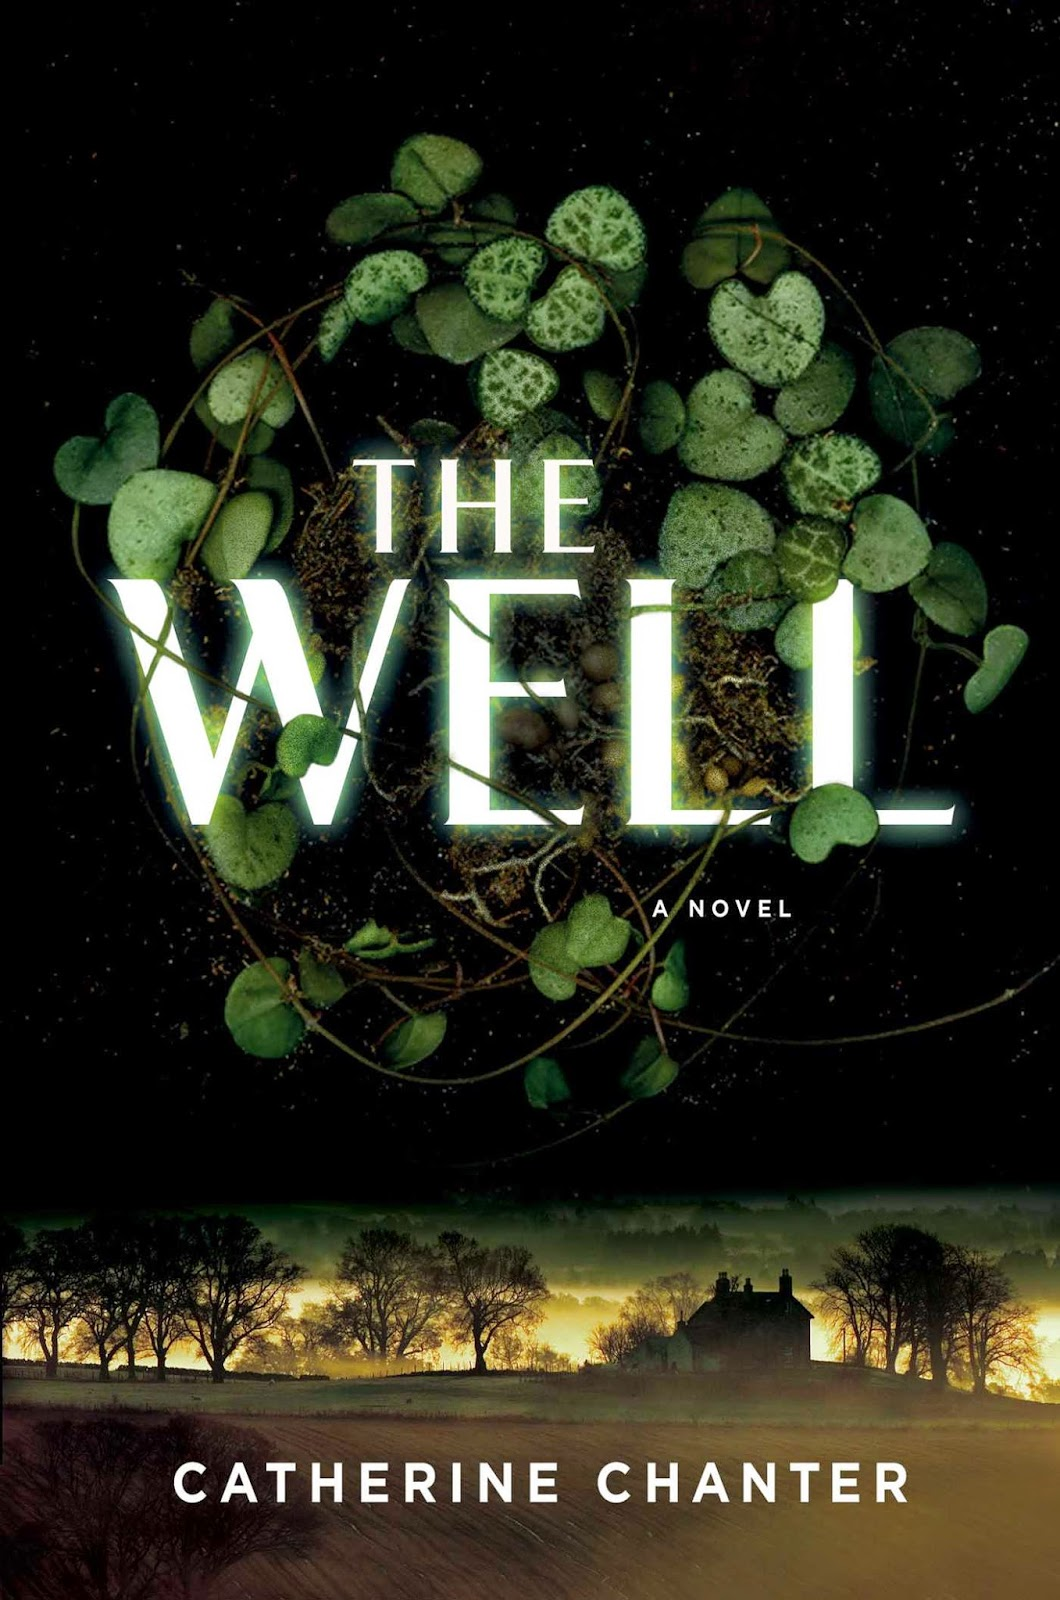 https://www.goodreads.com/book/show/22609511-the-well?from_search=true